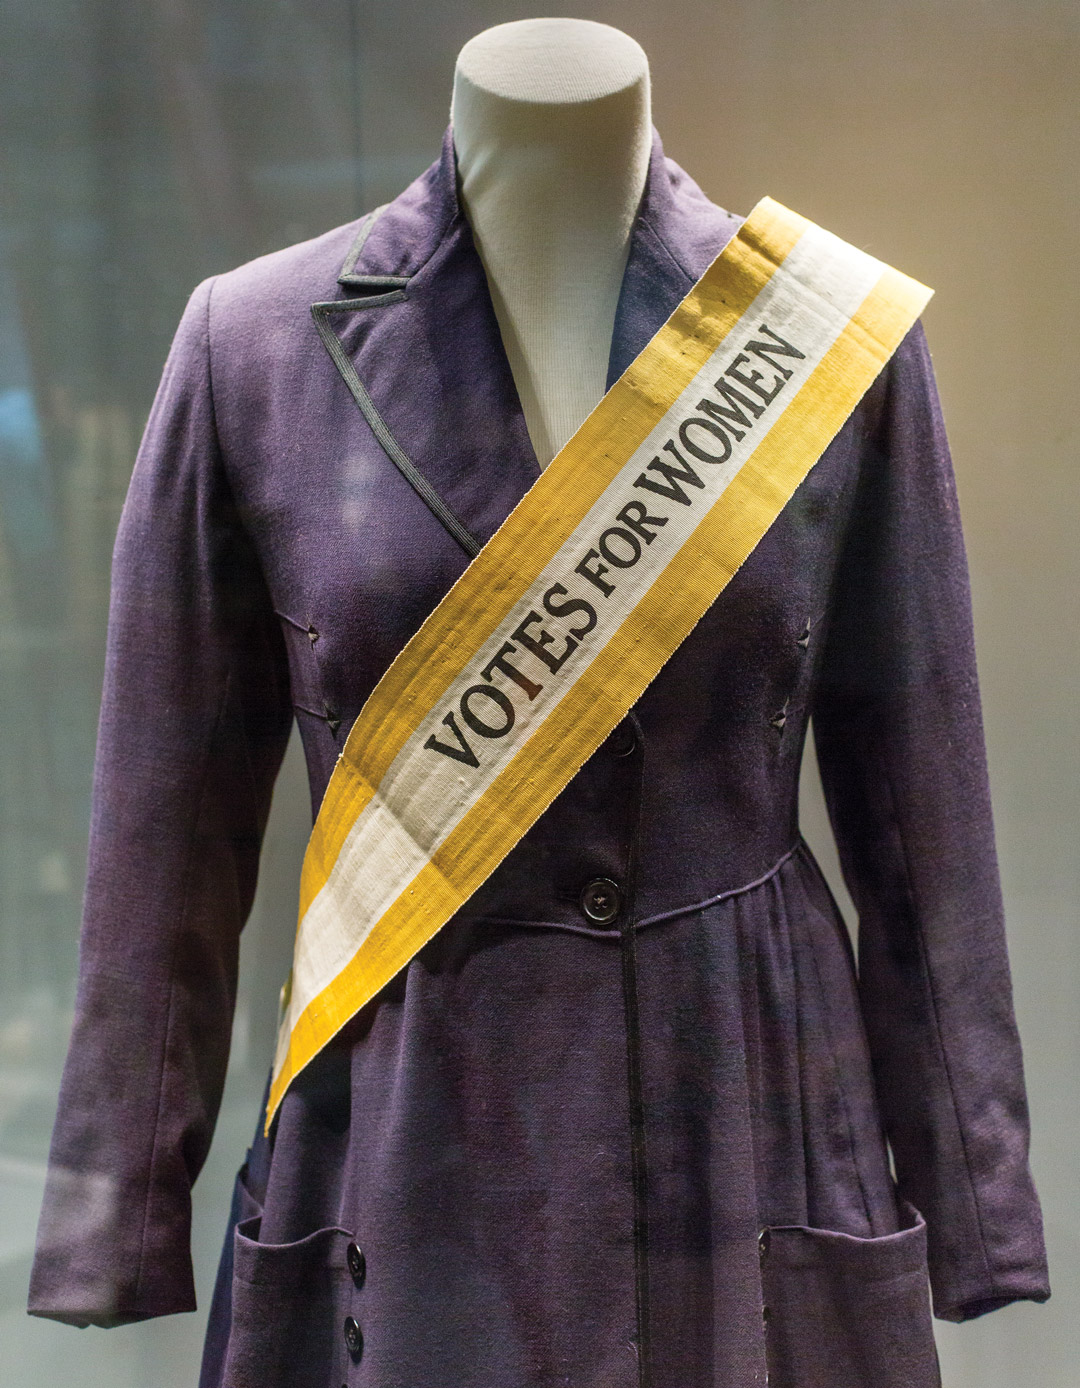 100th Anniversary of Women's Suffrage at Atlanta History Center